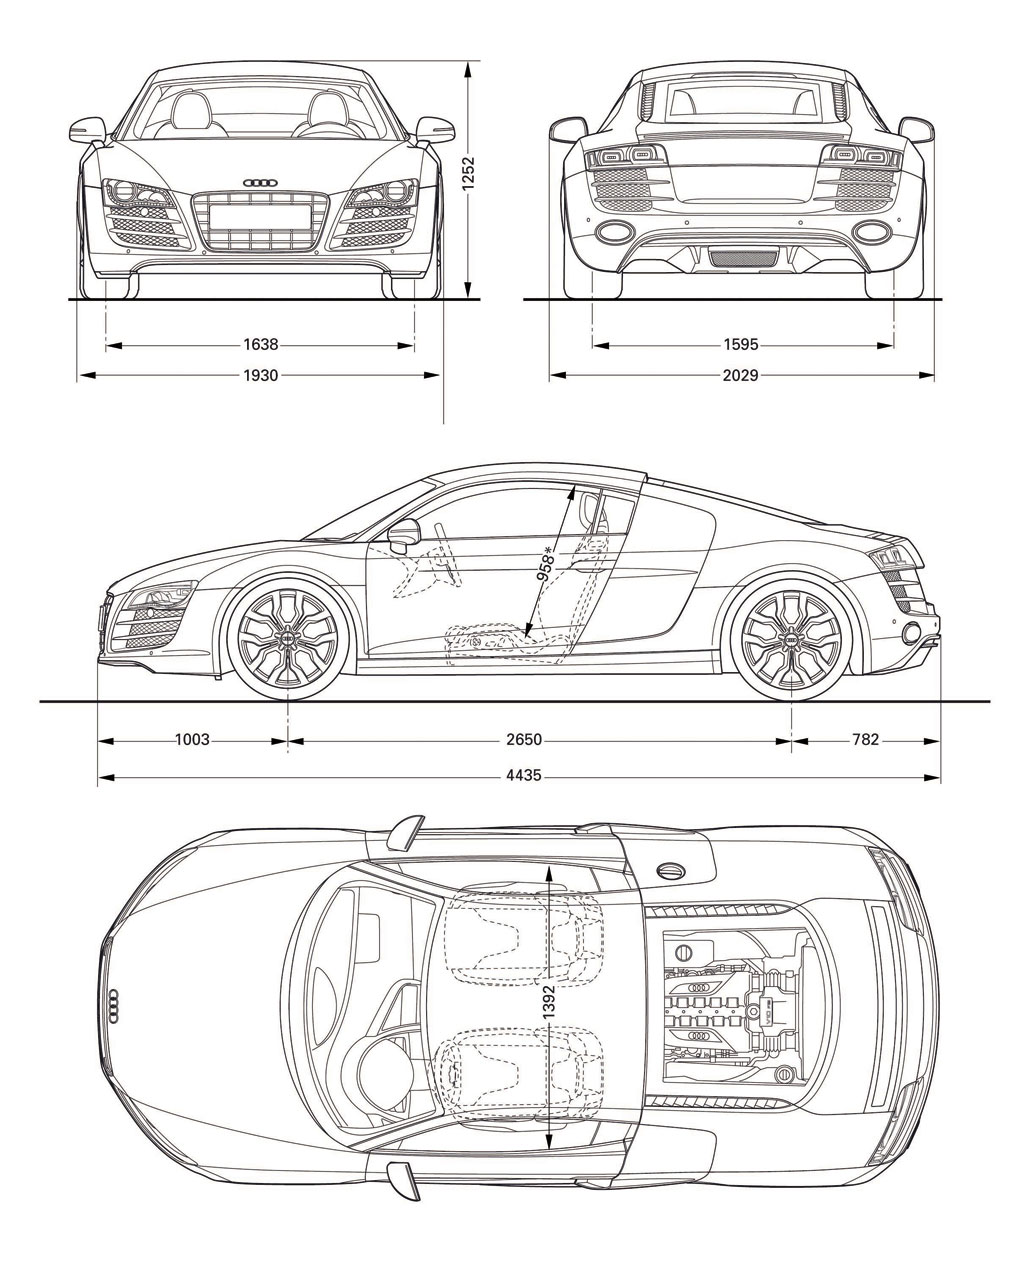 Audi R8 V10 blueprint dimensions - Car Body Design